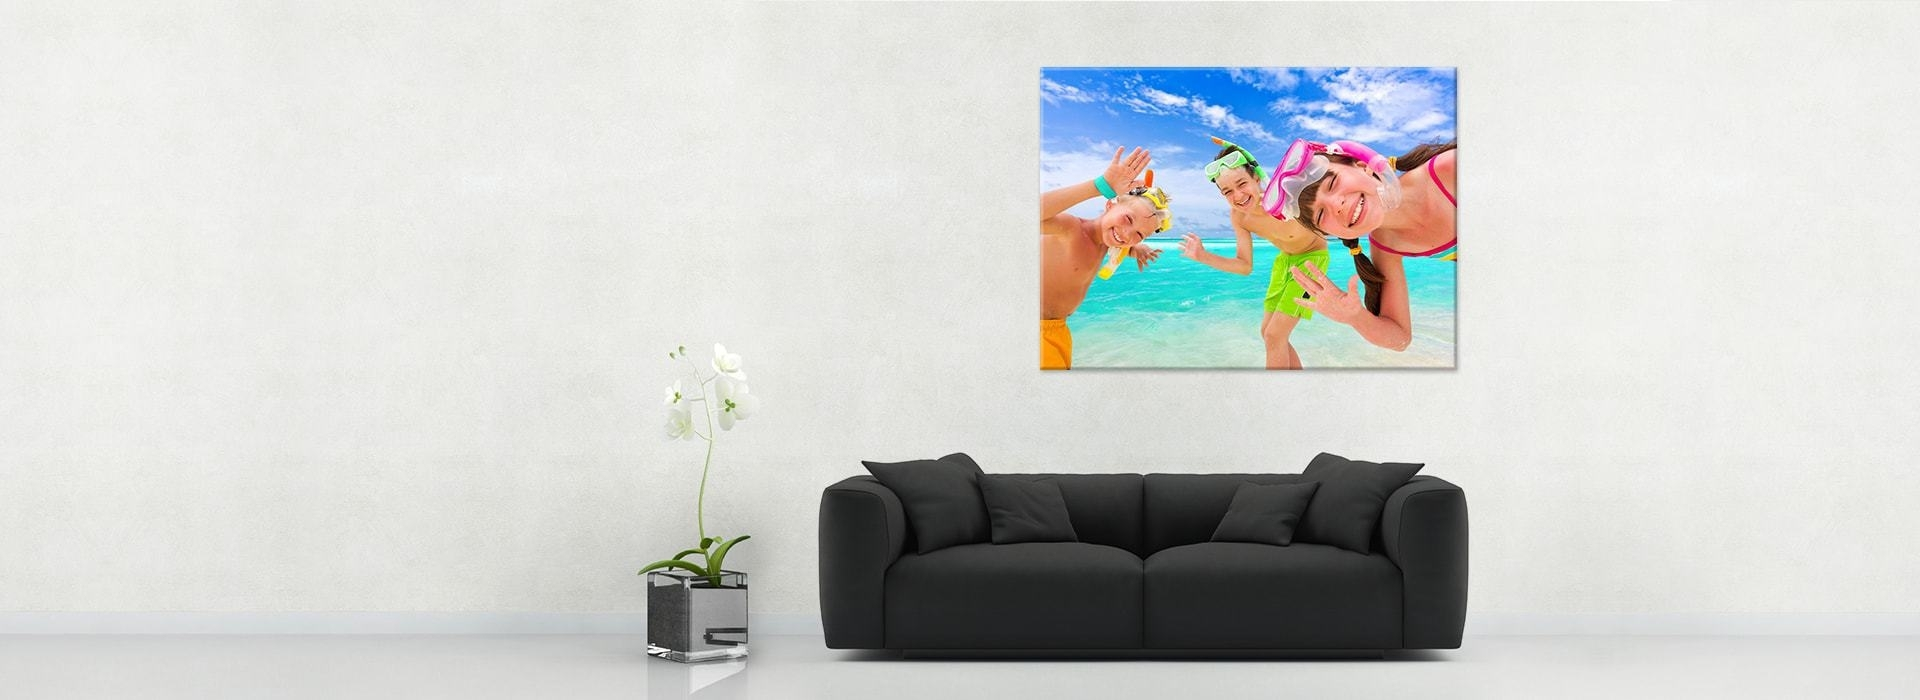 Canvas Prints | Canvas Factory Pertaining To Most Up To Date Canvas Wall Art Of Perth (View 8 of 15)